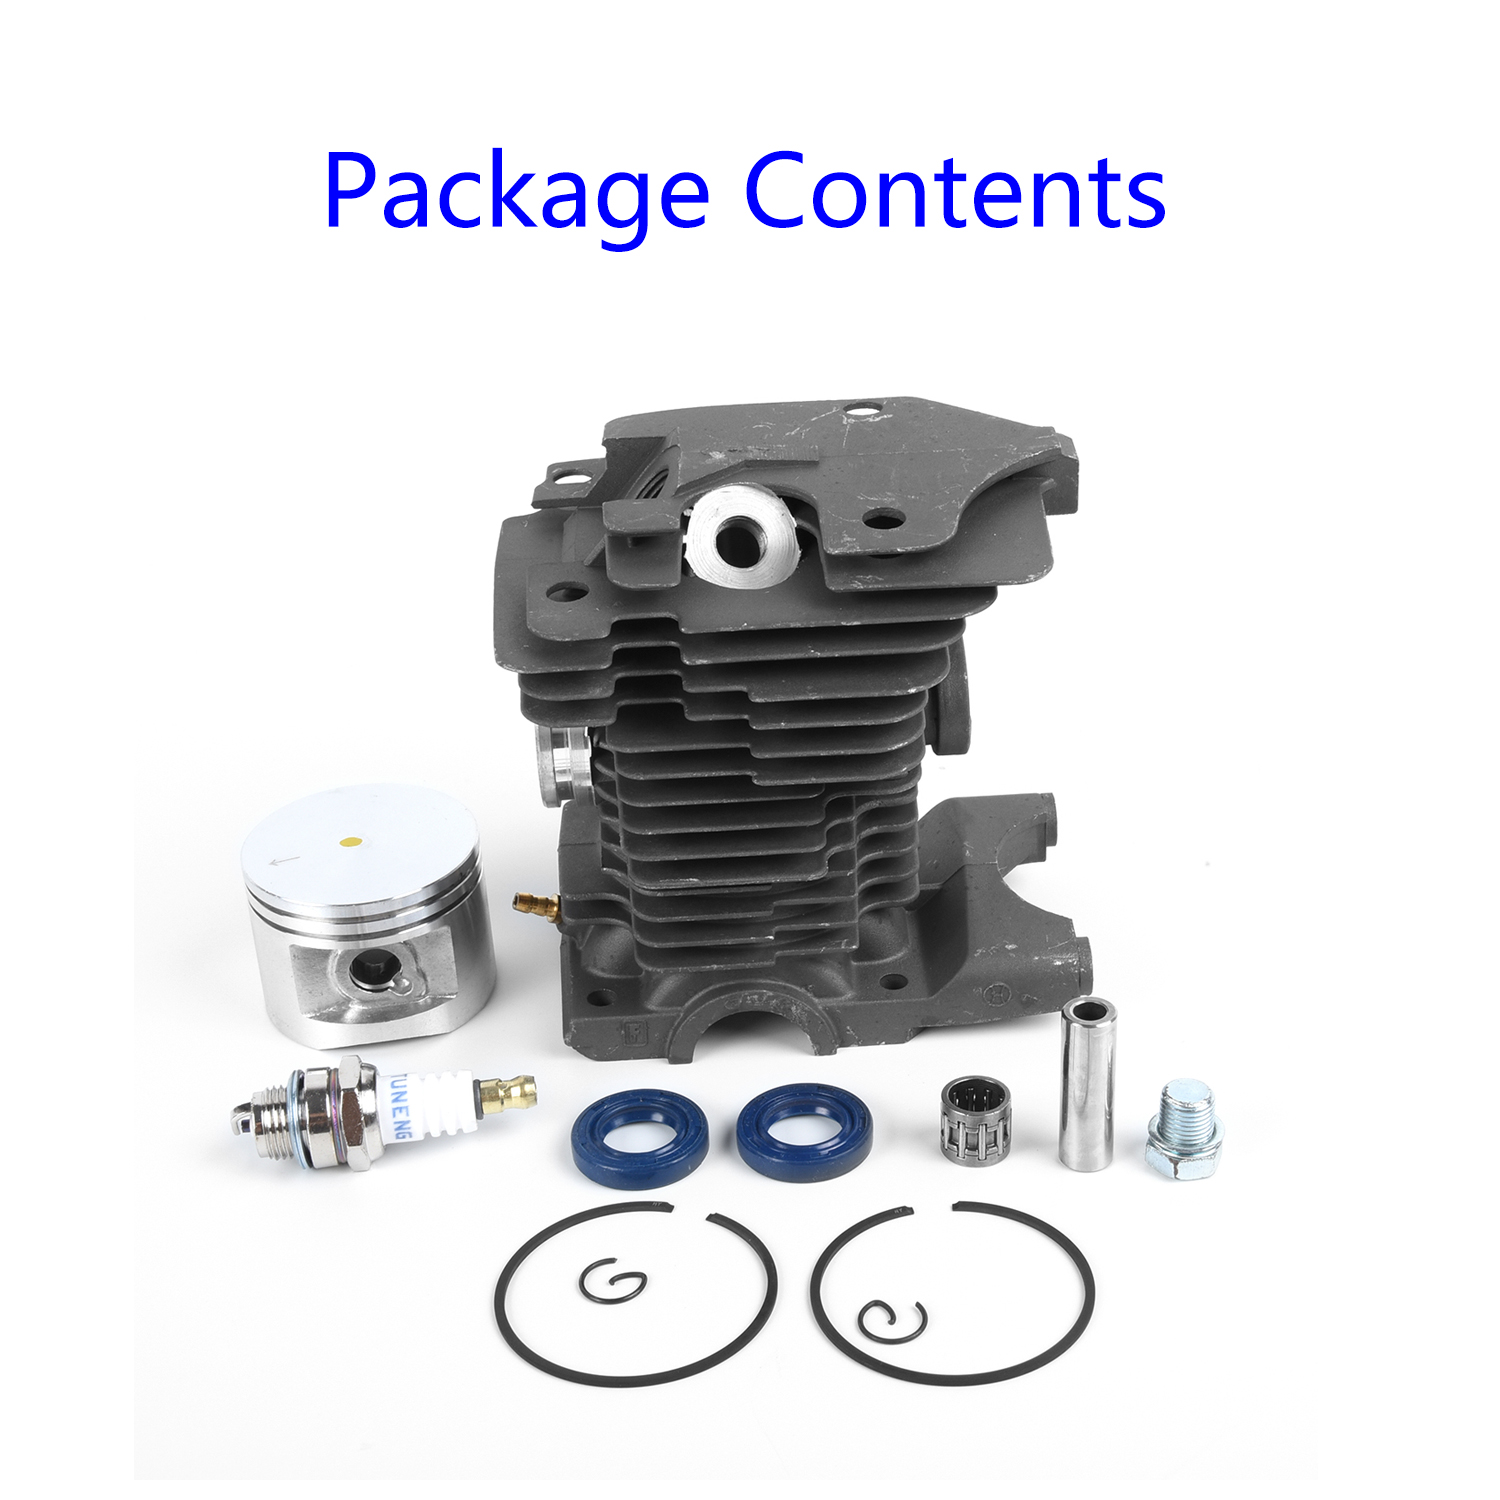 Cylinder Kit For Stihl MS270 MS280 MS 280 270 46mm Big Bore Attachment Suiatble|Tool Parts|Tools -